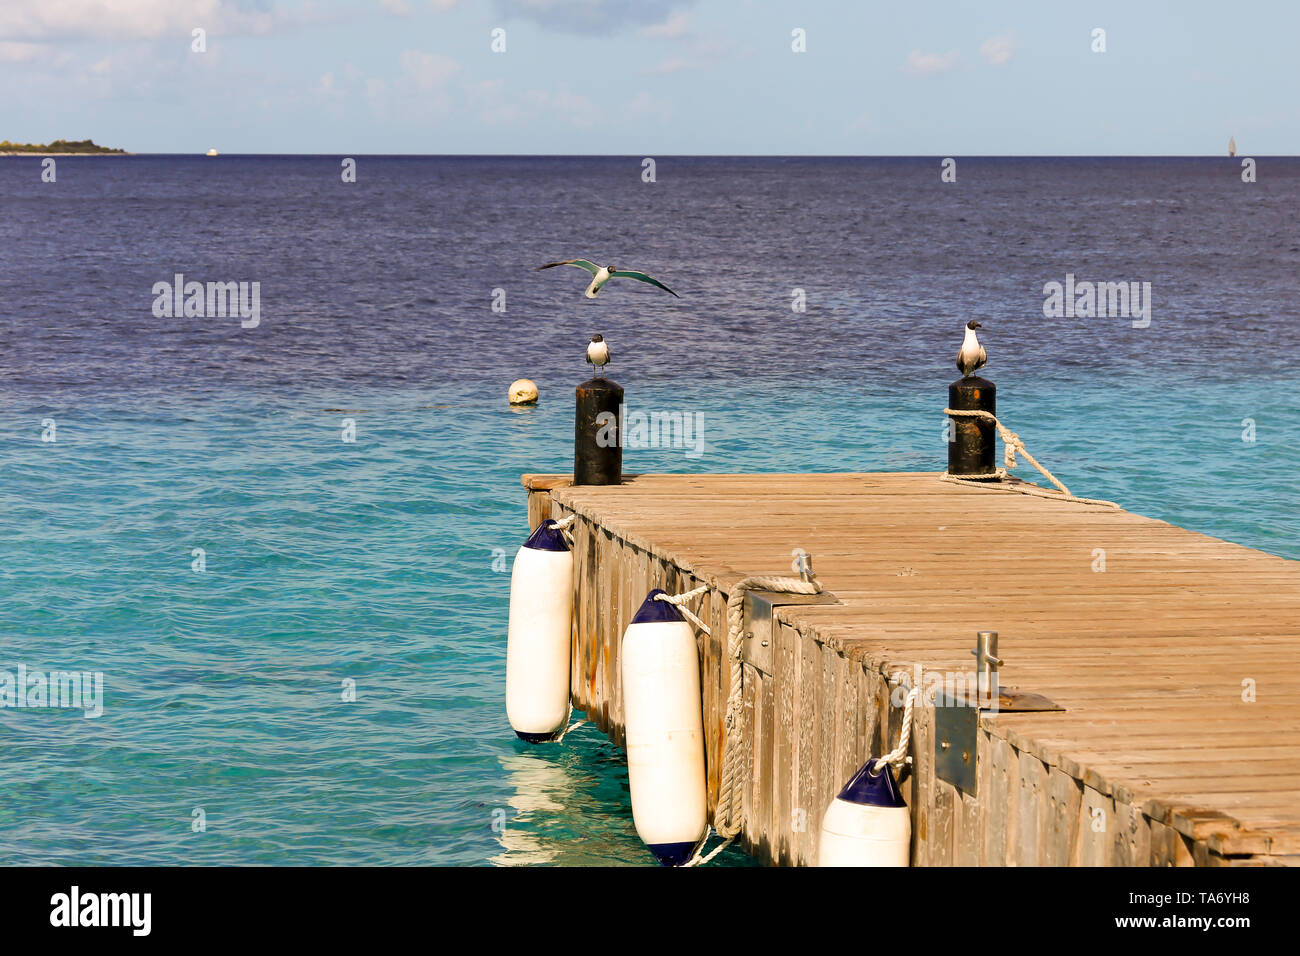 wooden pier leading out to sea with two birds sitting on beams with one bird flying into land - view out across the ocean with birds in the foreground - Stock Image